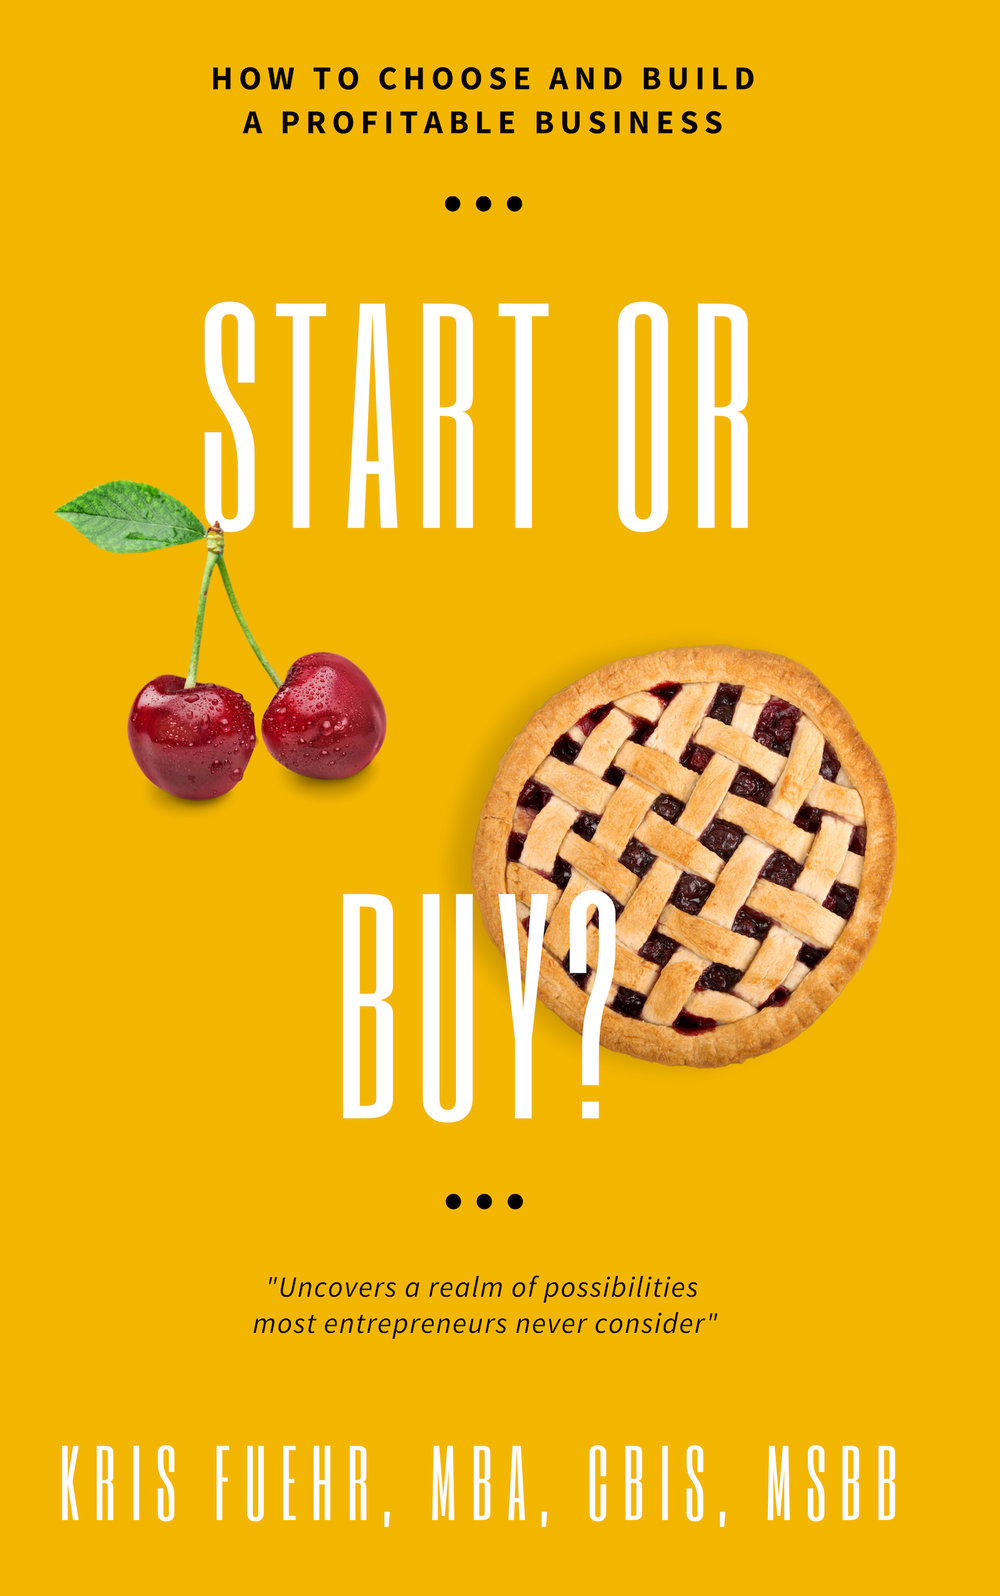 Start or Buy? Request the free eBook here.